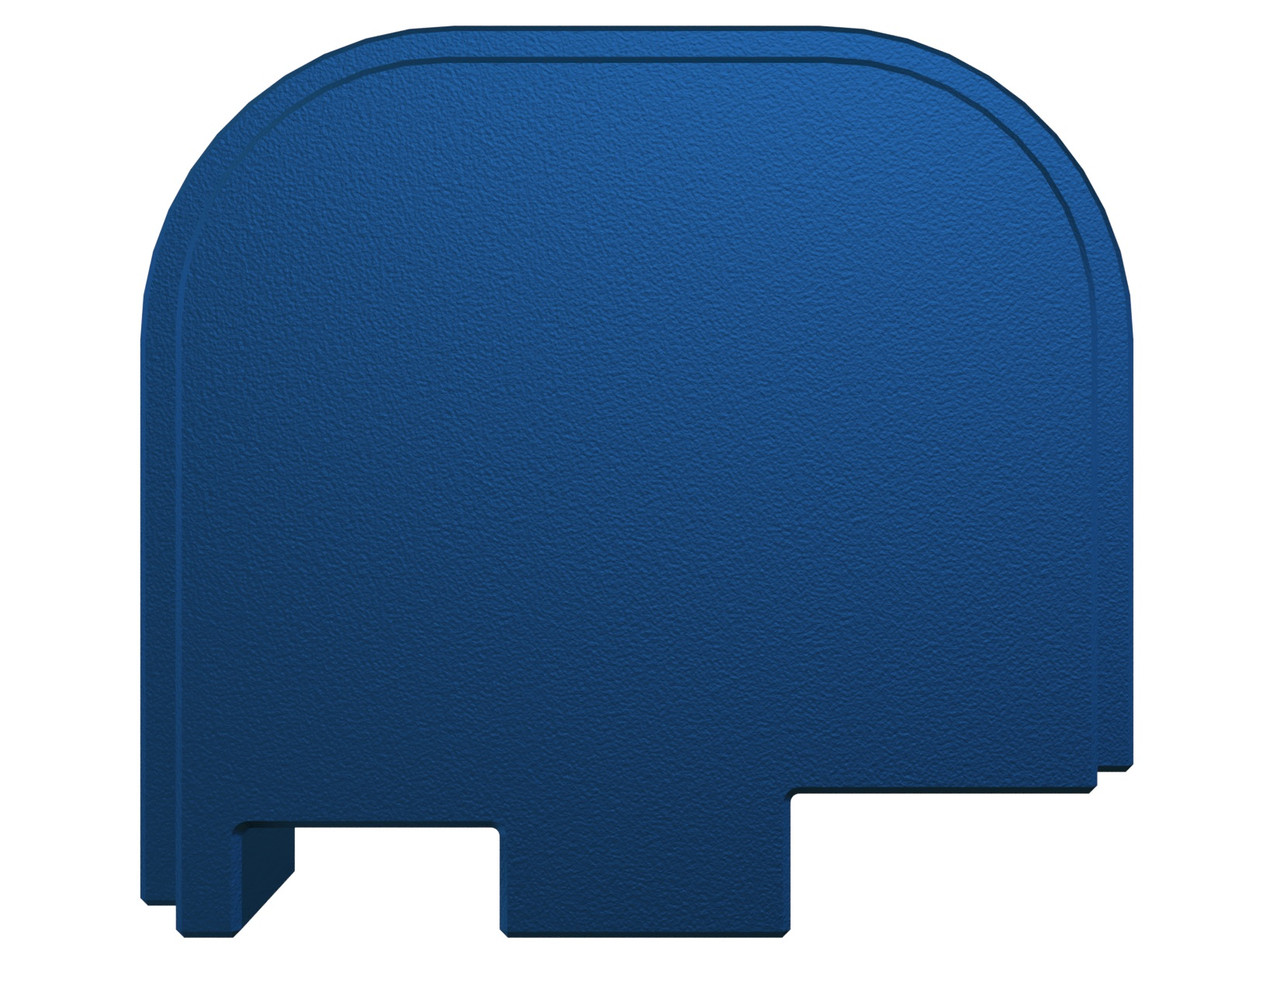 Rowe Tactical Glock Rear Slide Cover Plate G43 G43x G48 - Blue